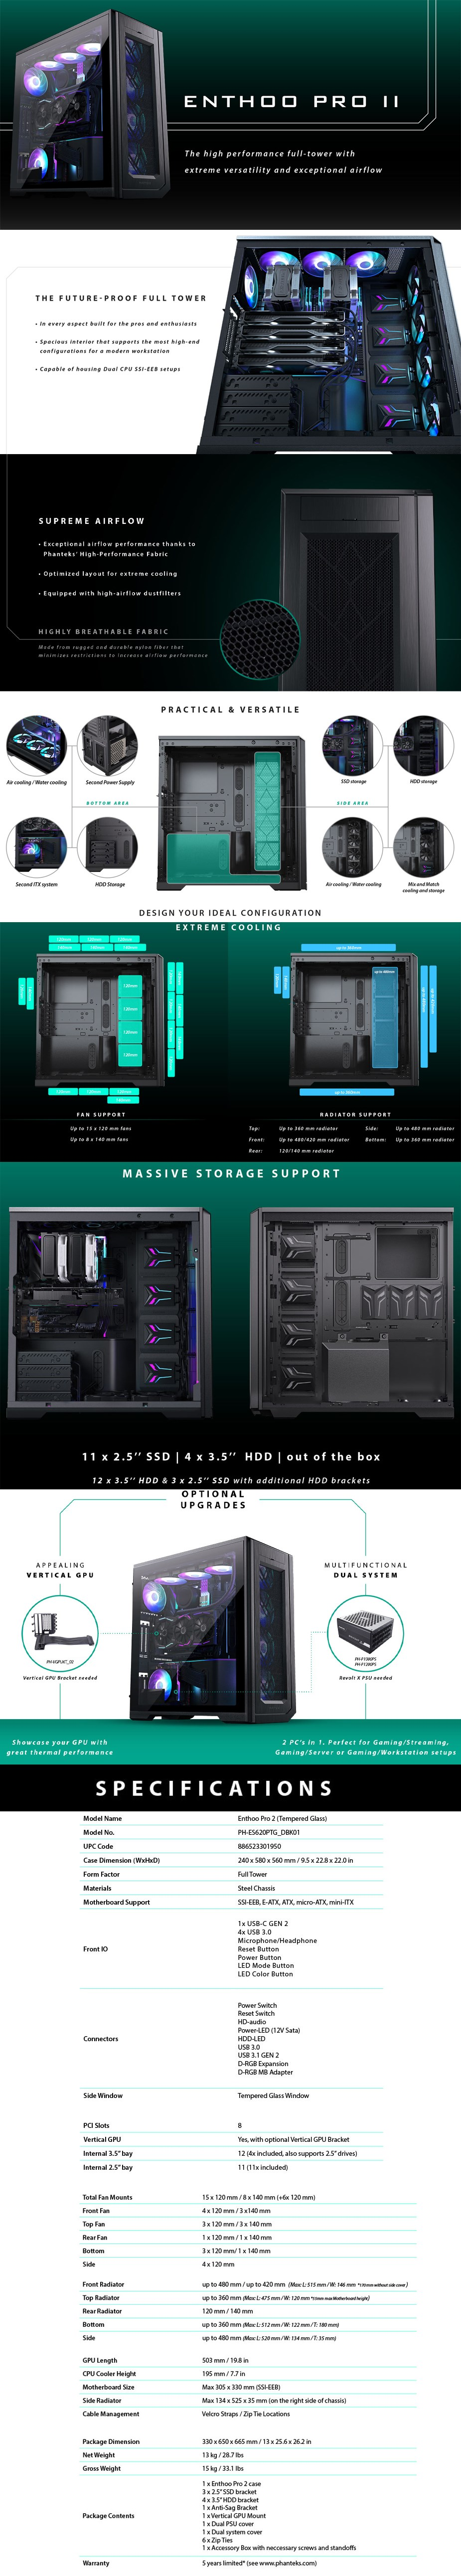 Phanteks Enthoo Pro 2 D-RGB Tempered Glass Full-Tower ATX Case - Black - Overview 1